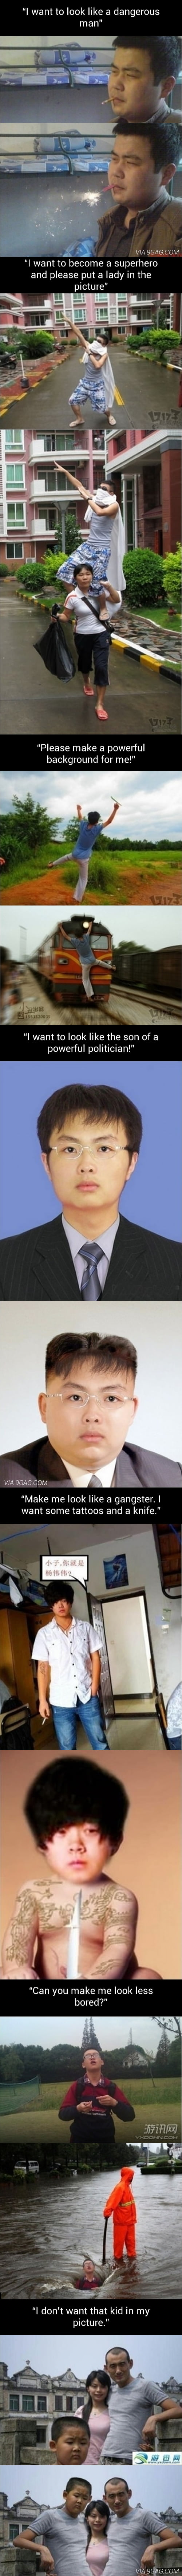 Asian Photoshop Troll Asian Photoshop Troll